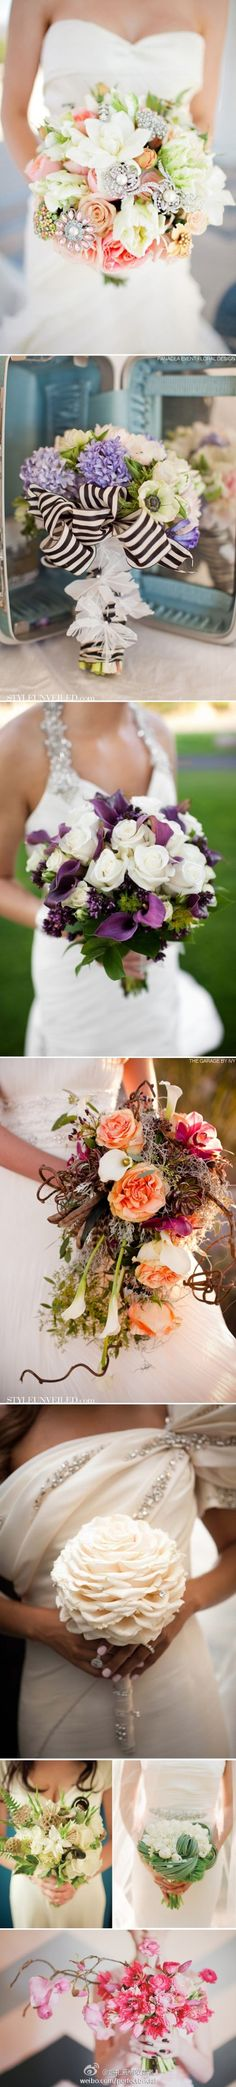 love the 3rd purple cali lilies/white rose boquet...gorgeous